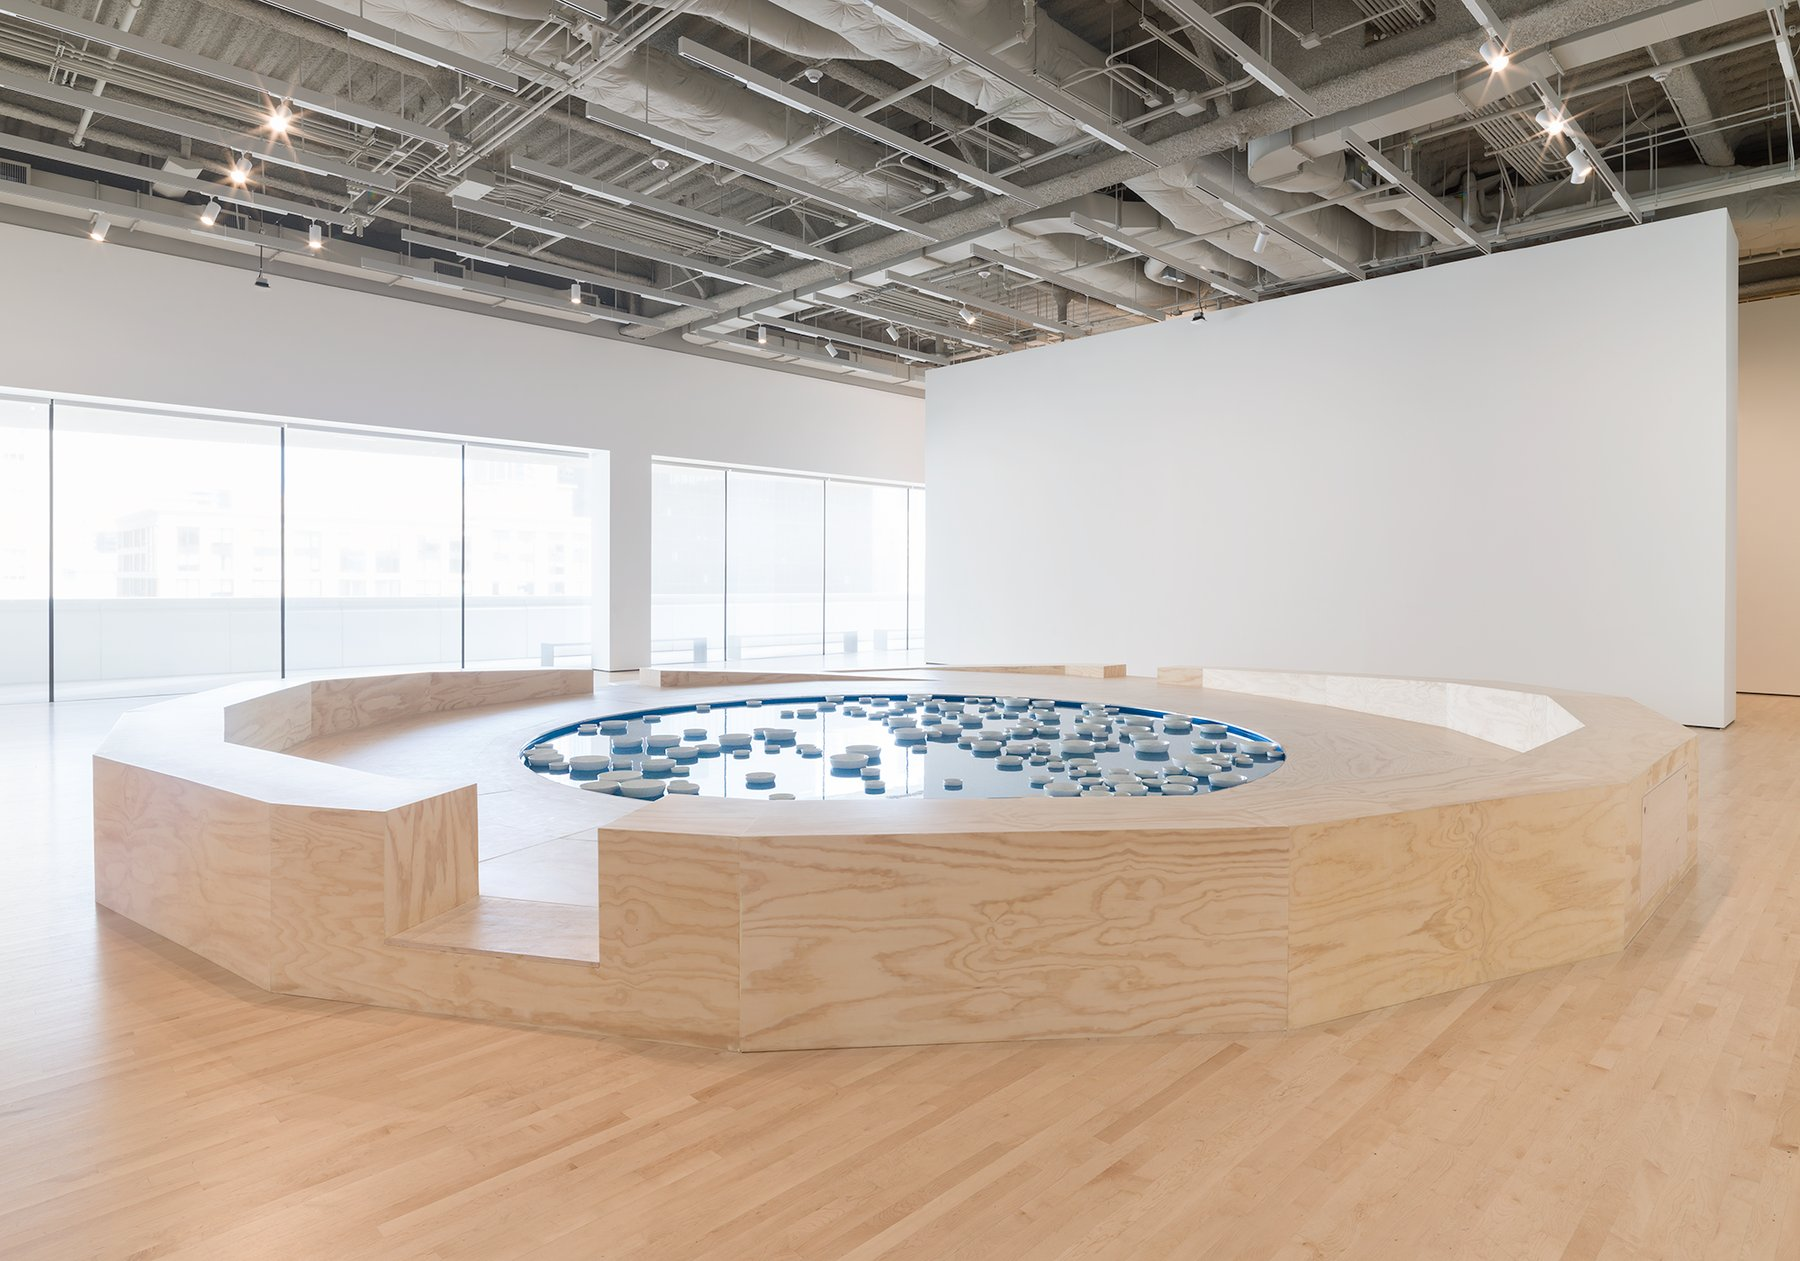 A gallery shows a pond filled with white bowls, Boursier-Mougenot, Soundtracks